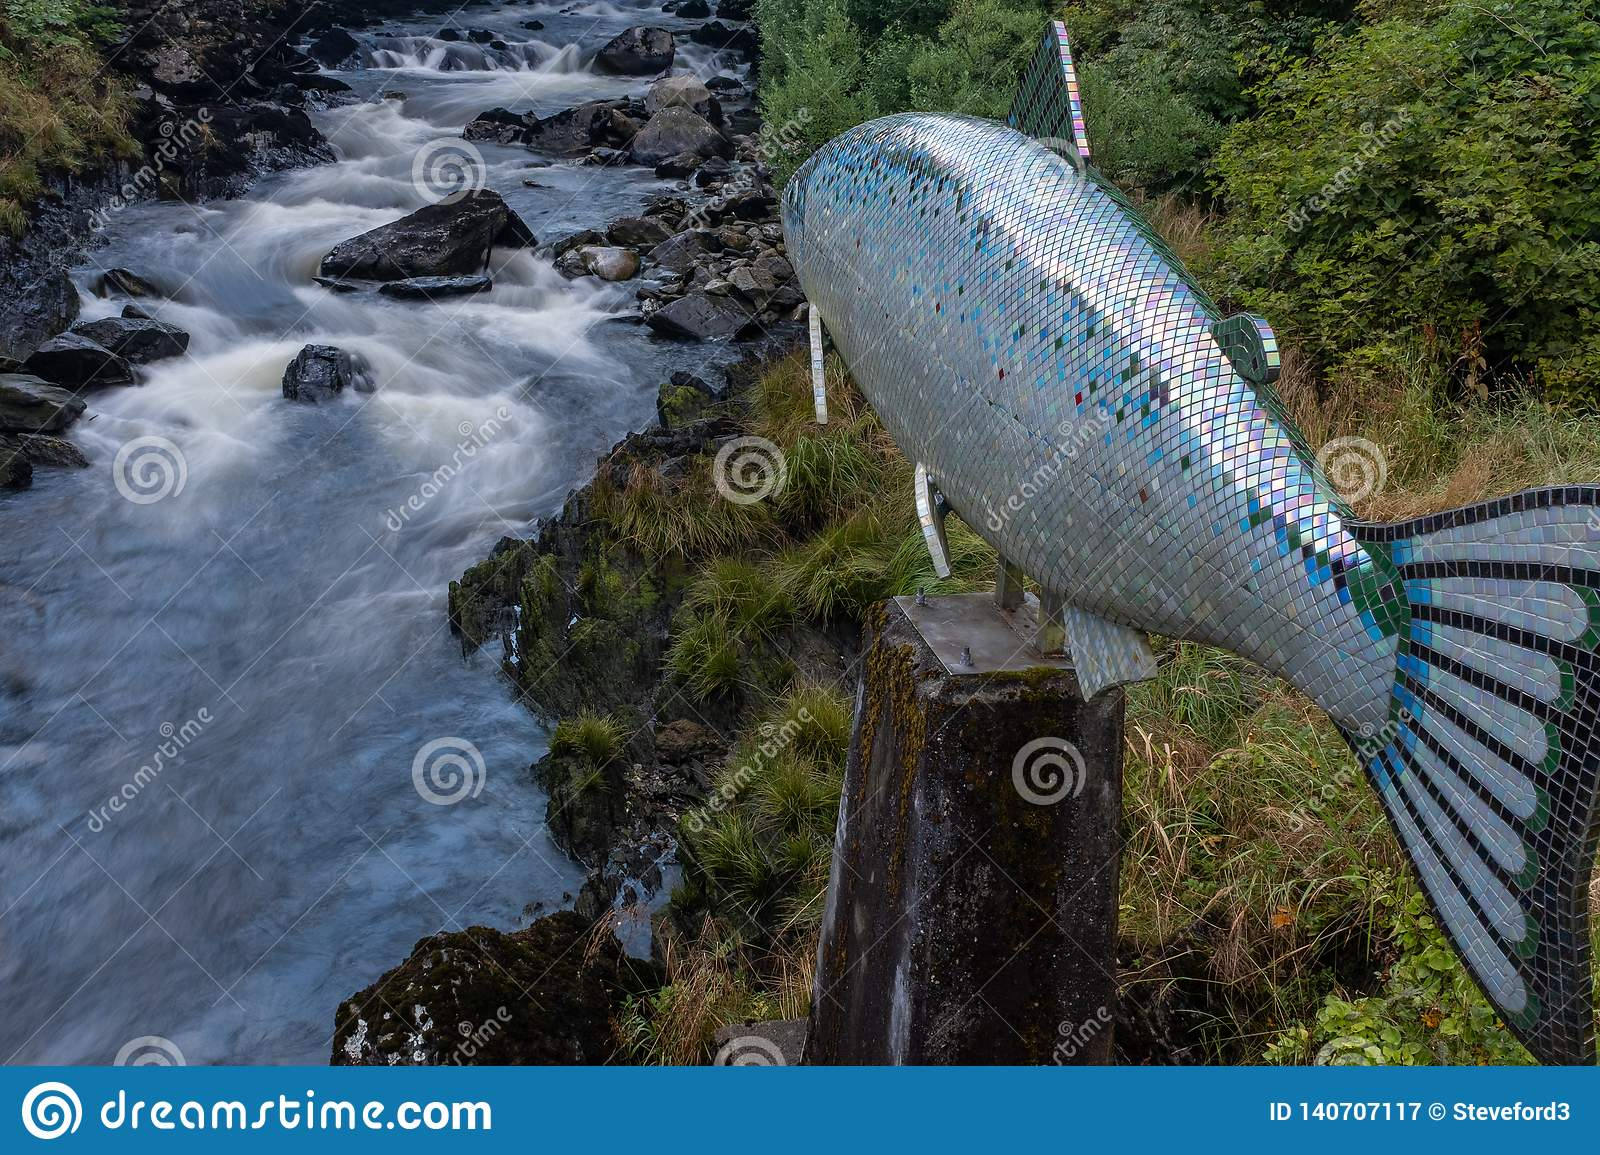 The bubbling Ketchikan Creek runs passed a sculpture of a salmon